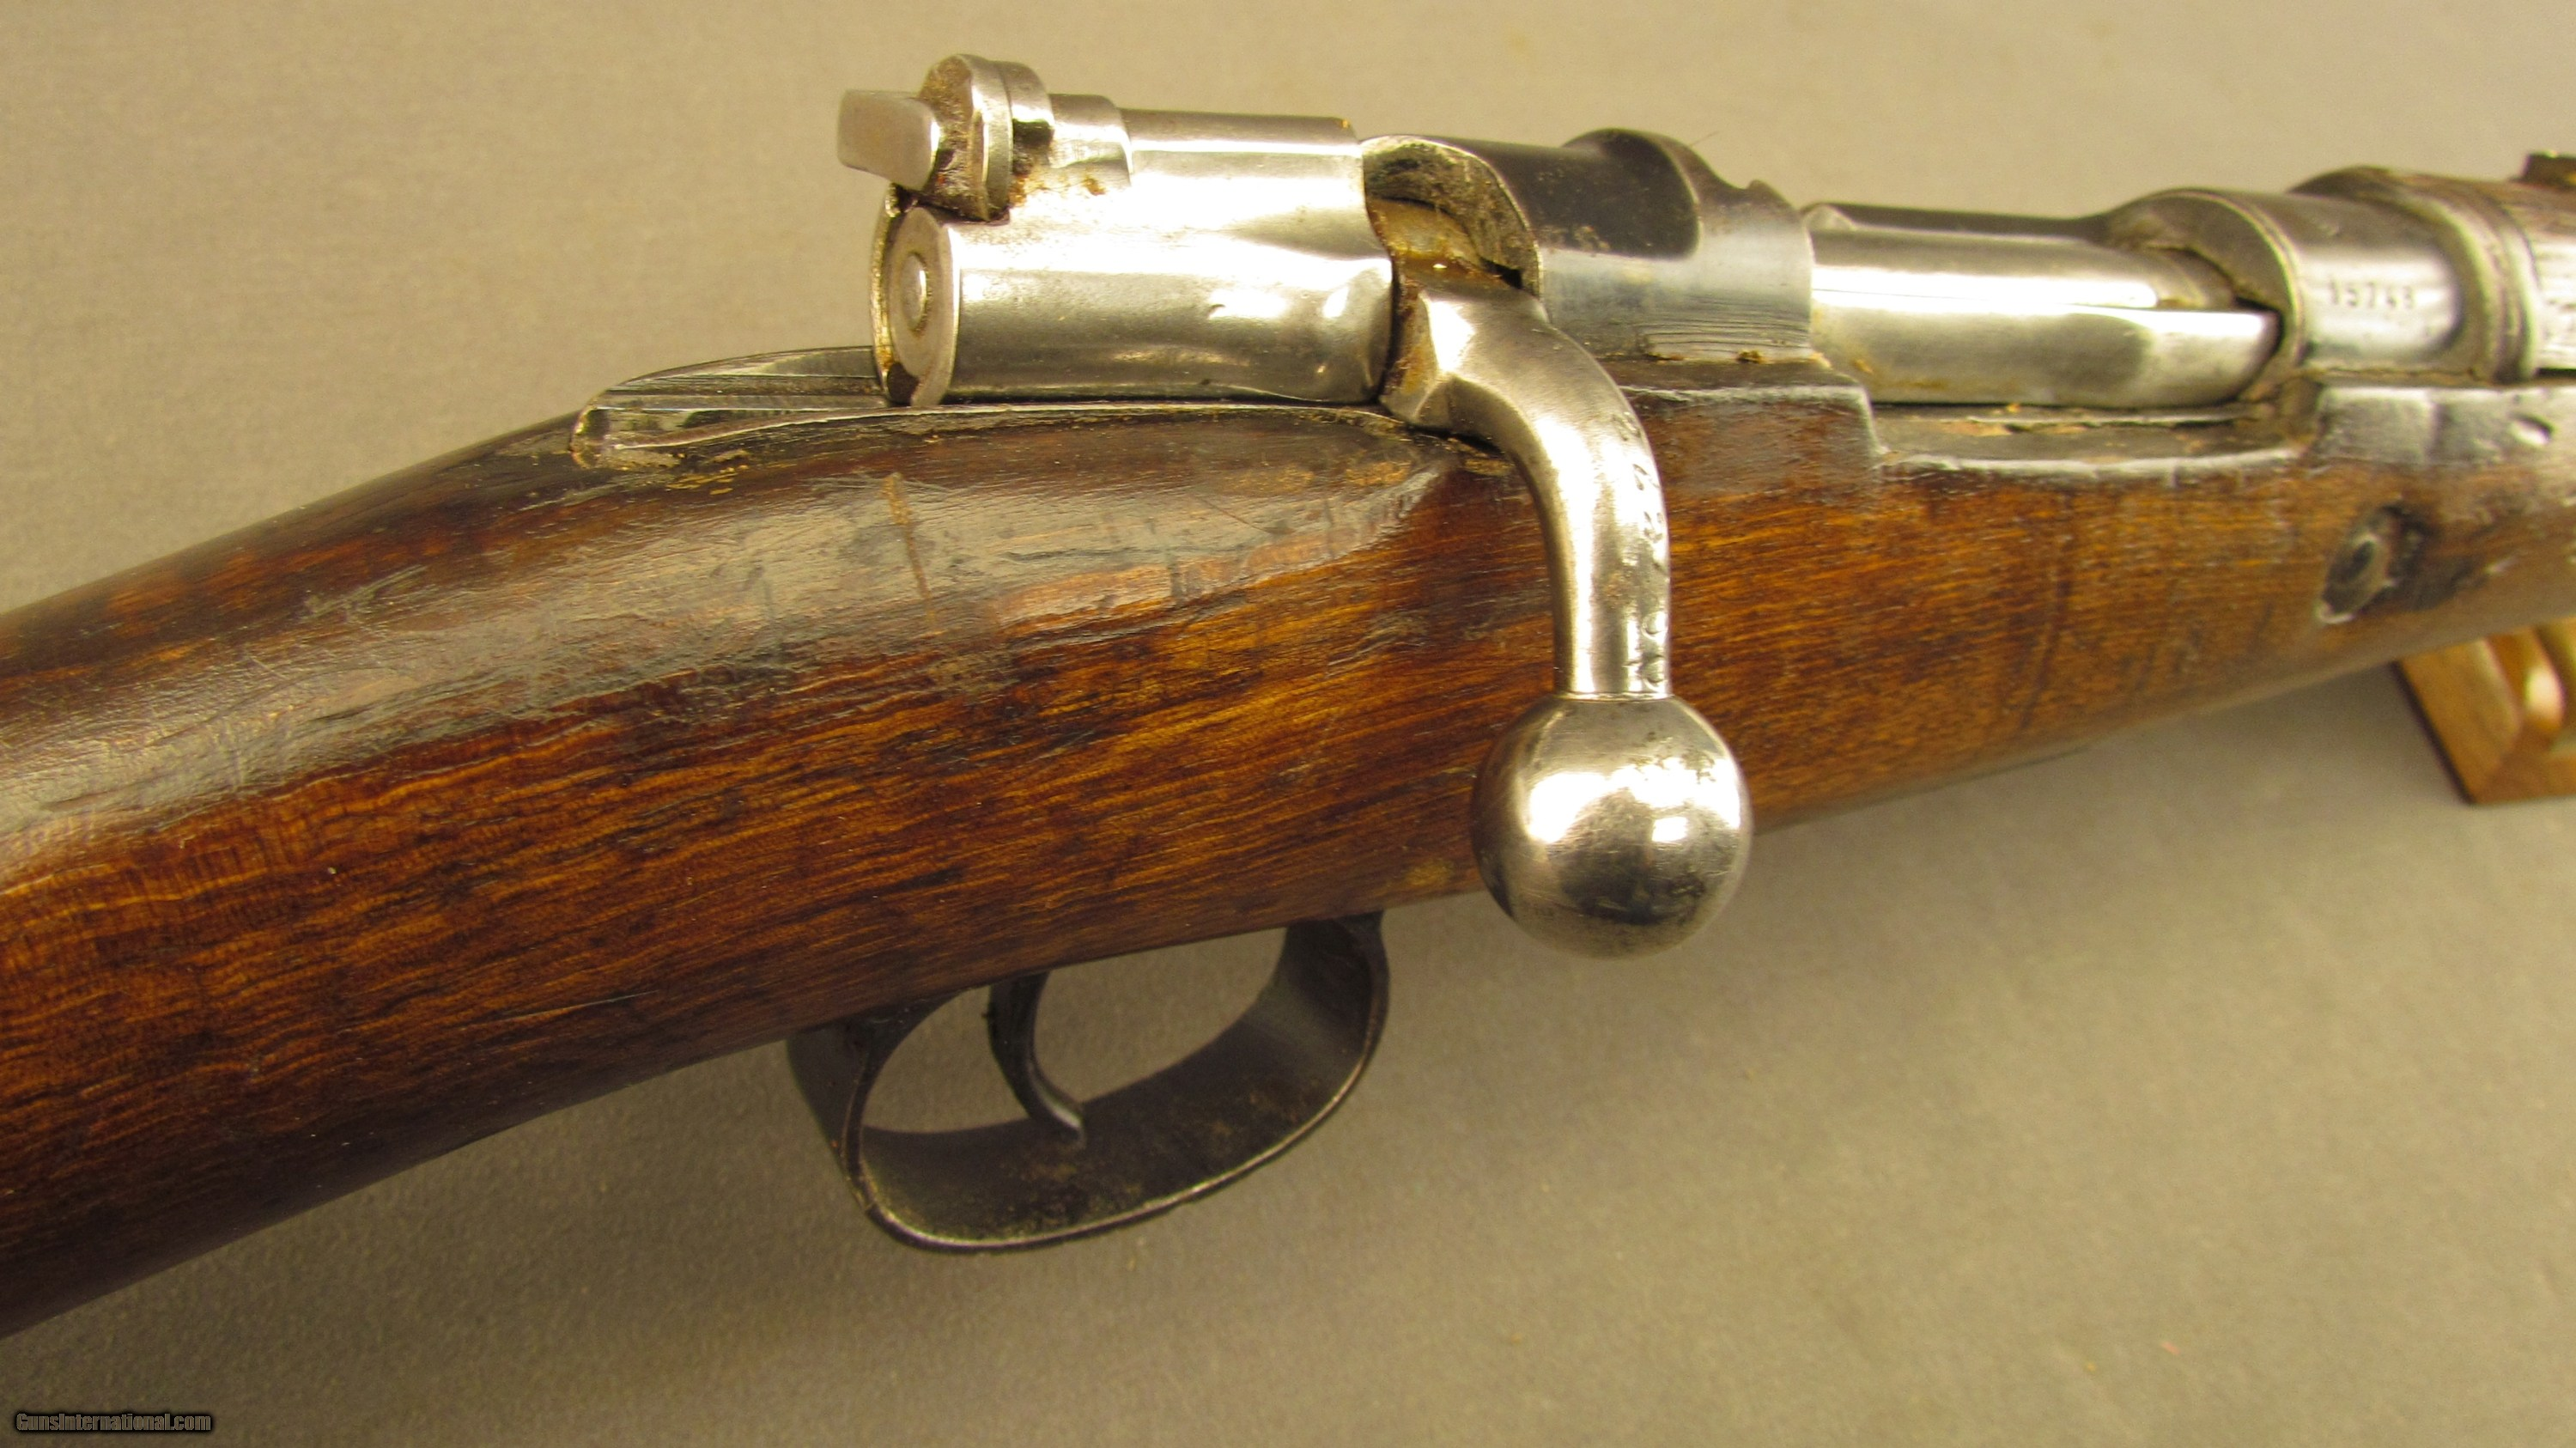 Spanish Model 1916 Short Rifle with Civil Guard Markings